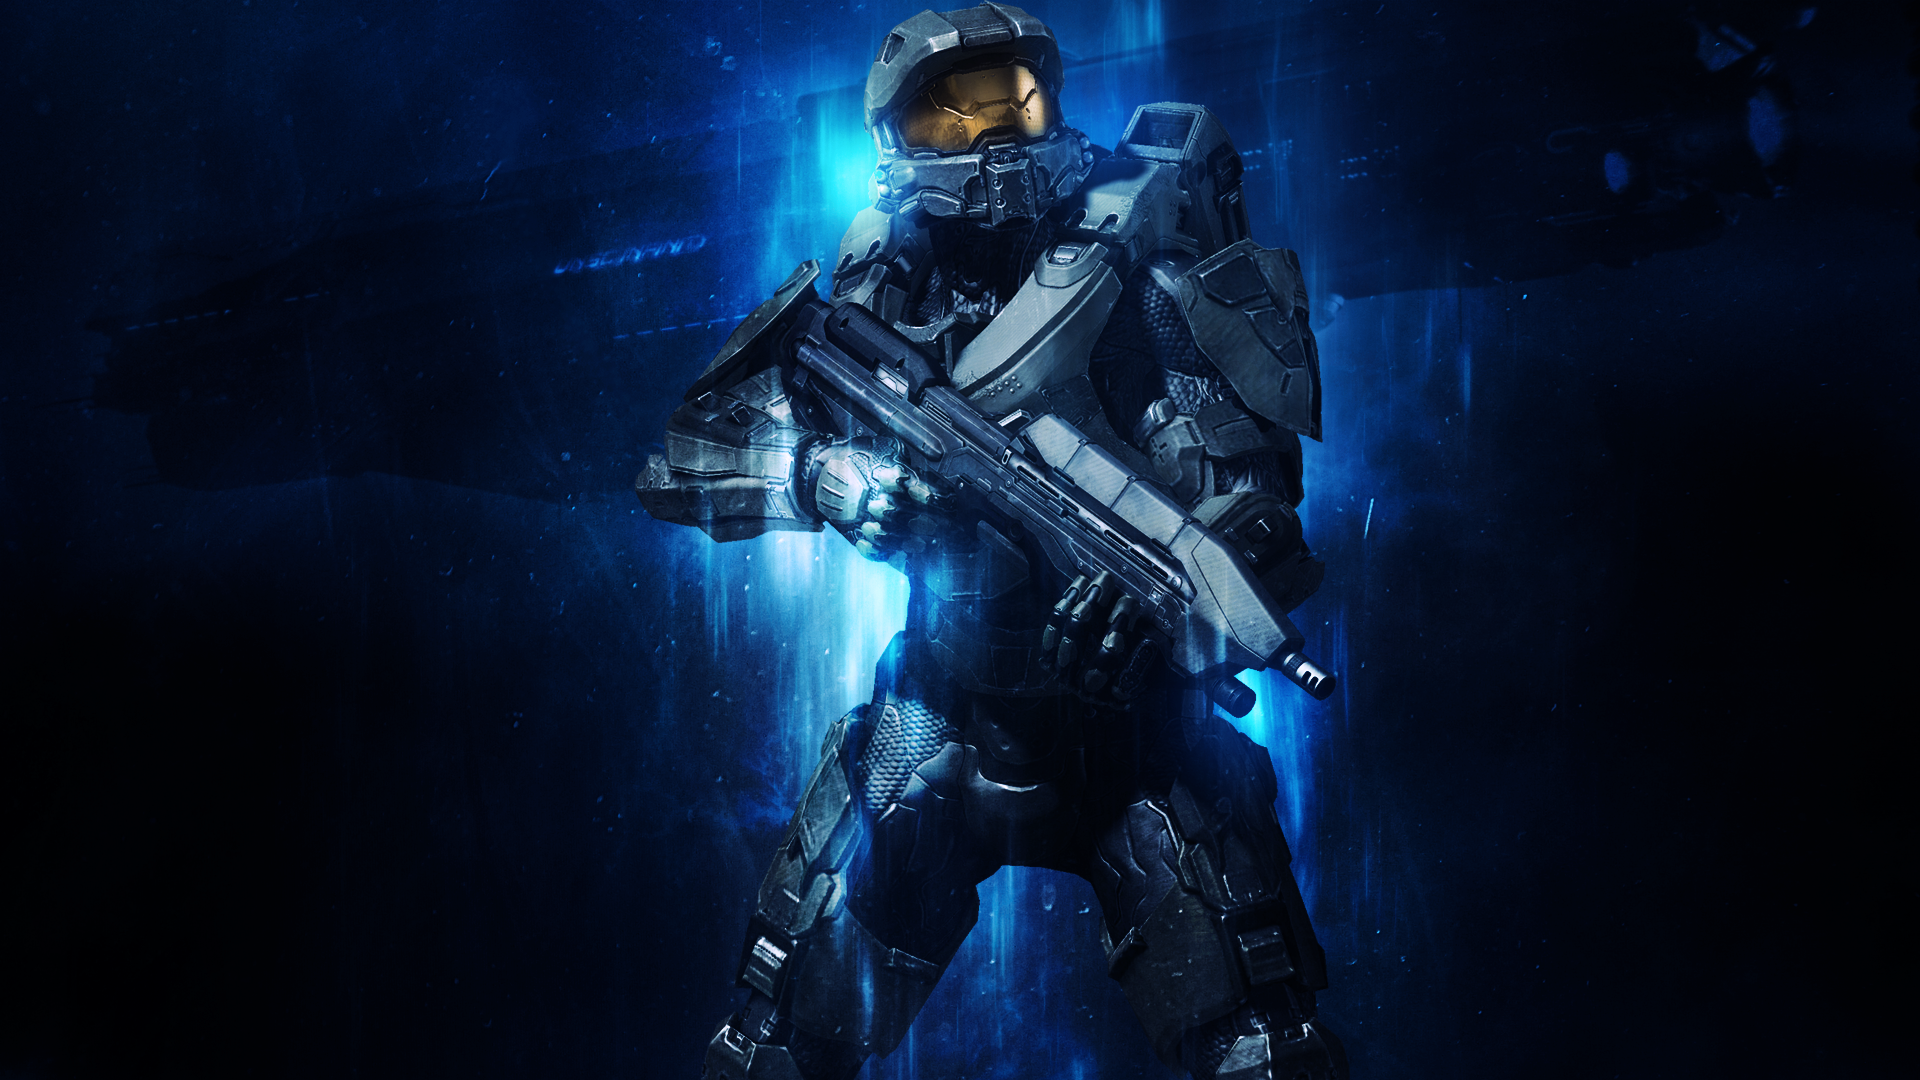 Halo-1920%C3%971080-High-Definition-Daily-Screens-id-wallpaper-wp3806212